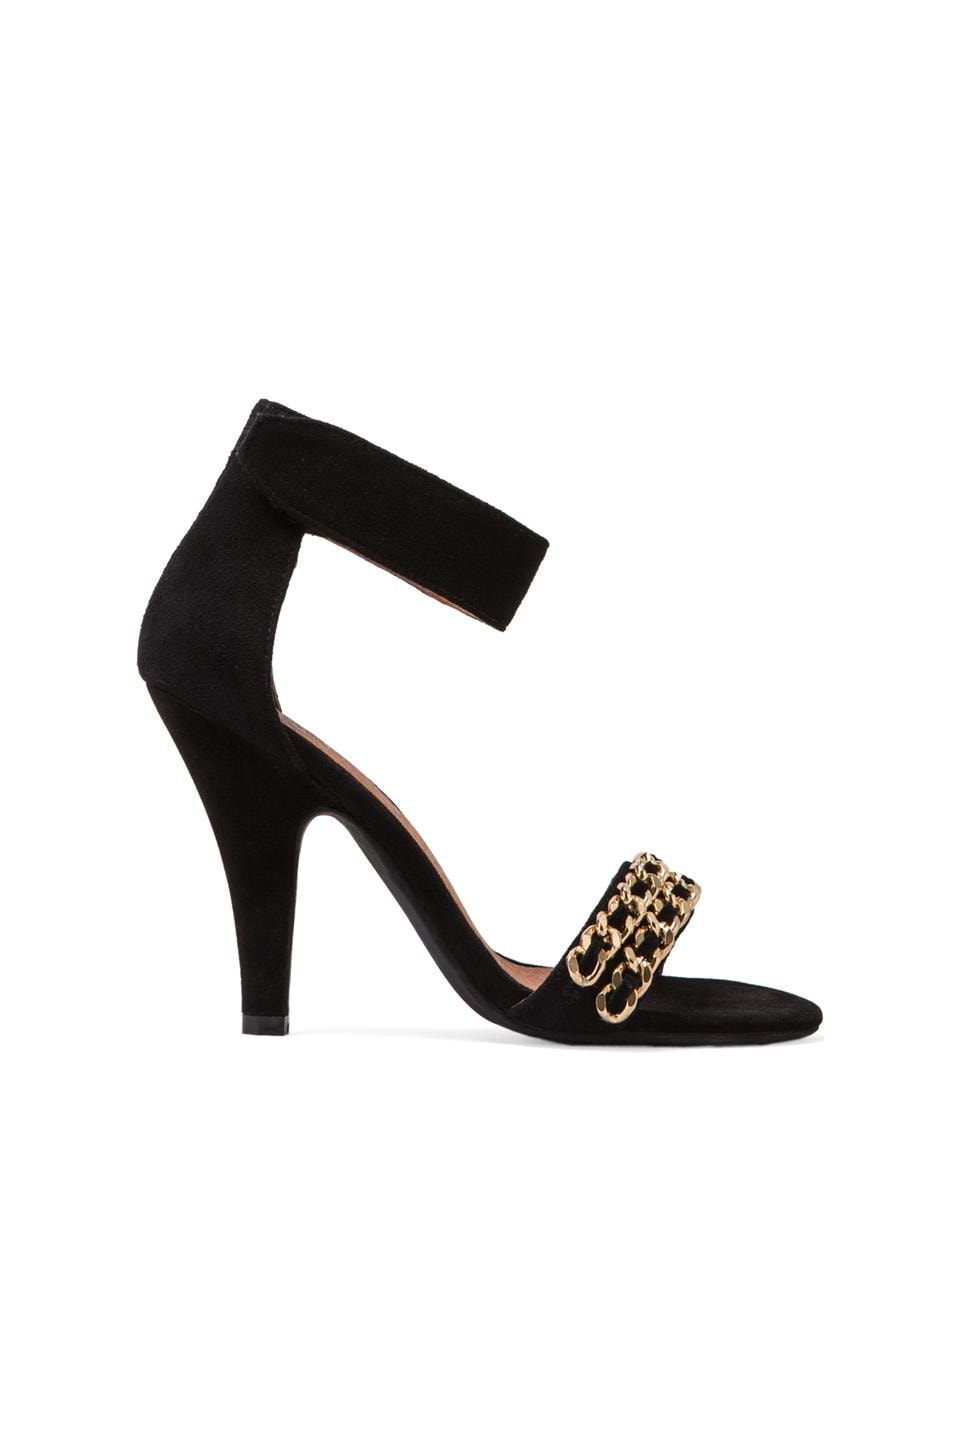 Jeffrey Campbell Hough Suede Embellished Heel in Black/Gold